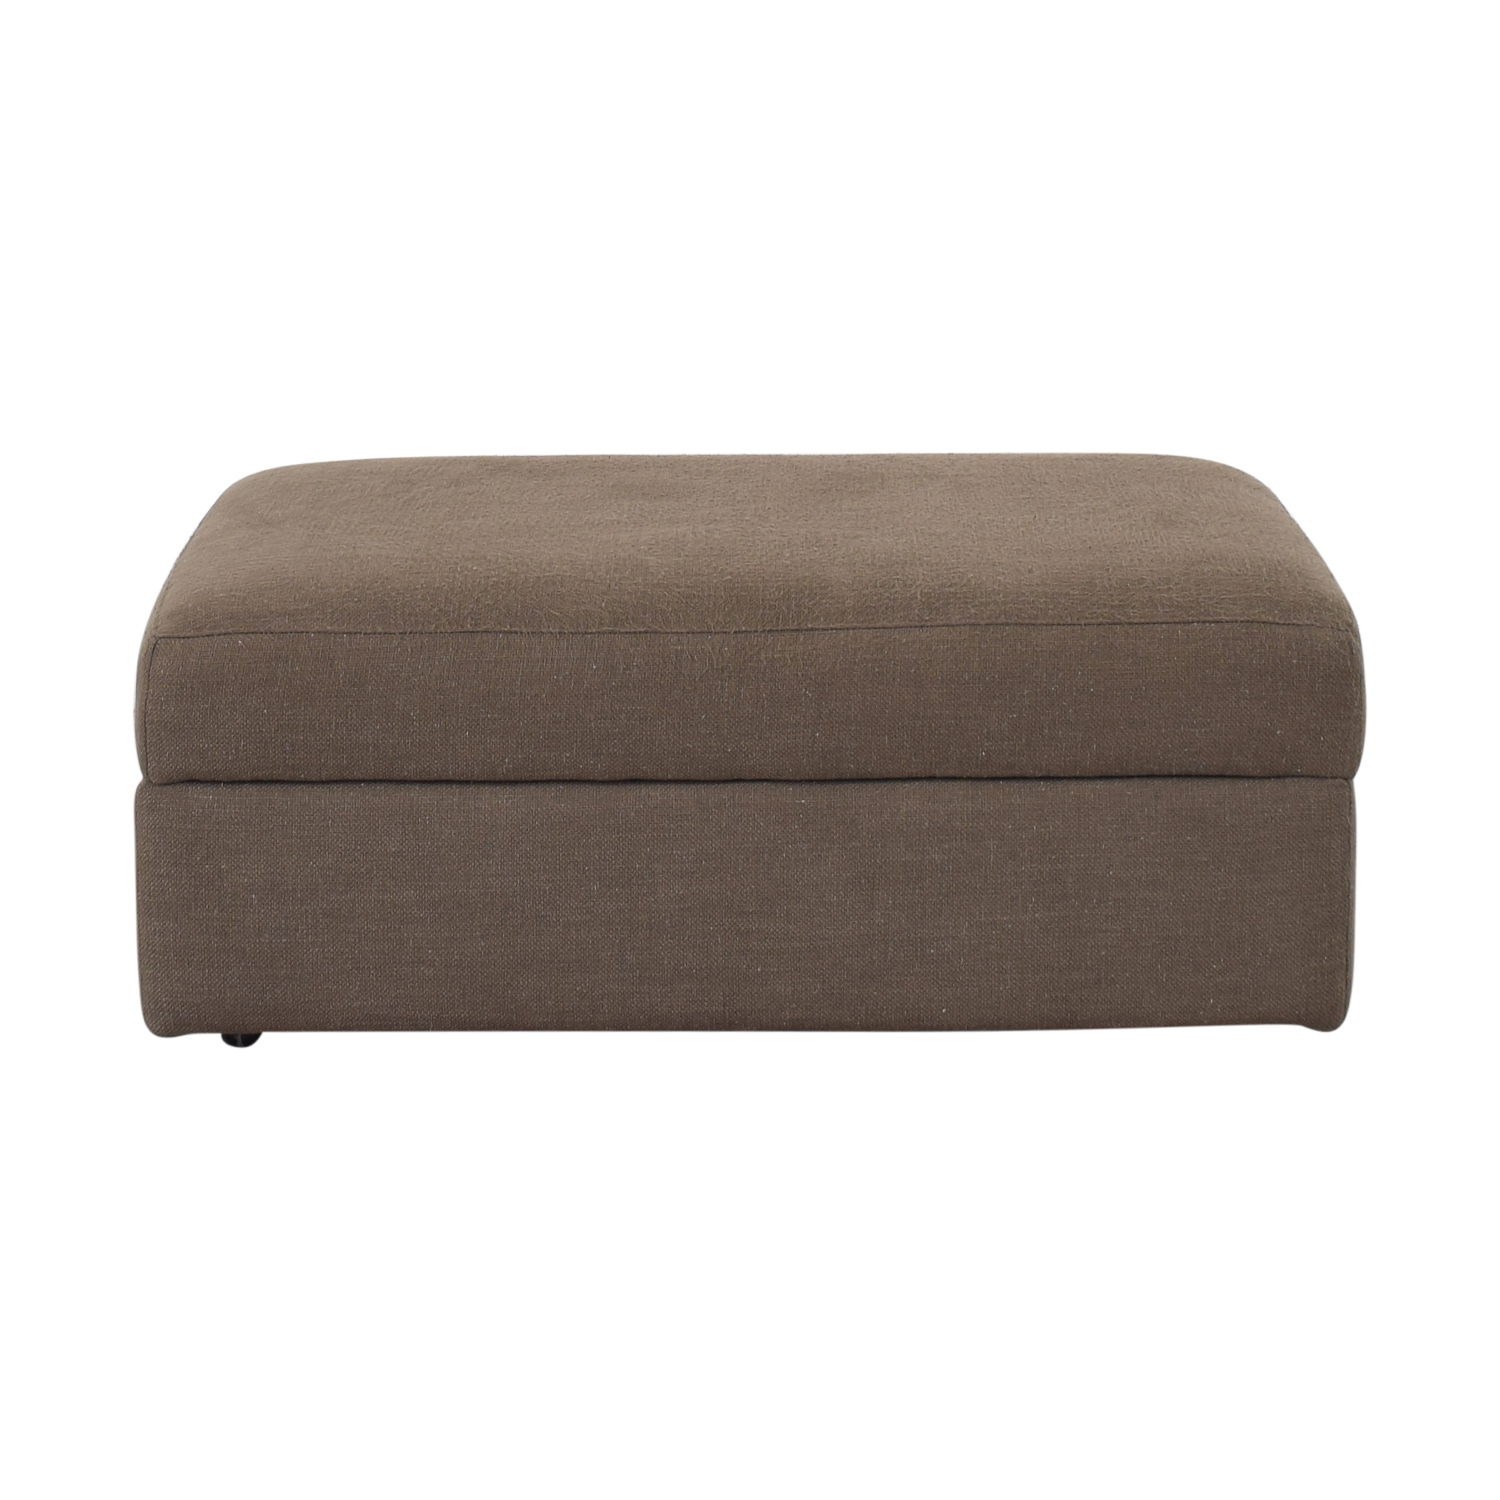 Crate & Barrel Storage Ottoman sale